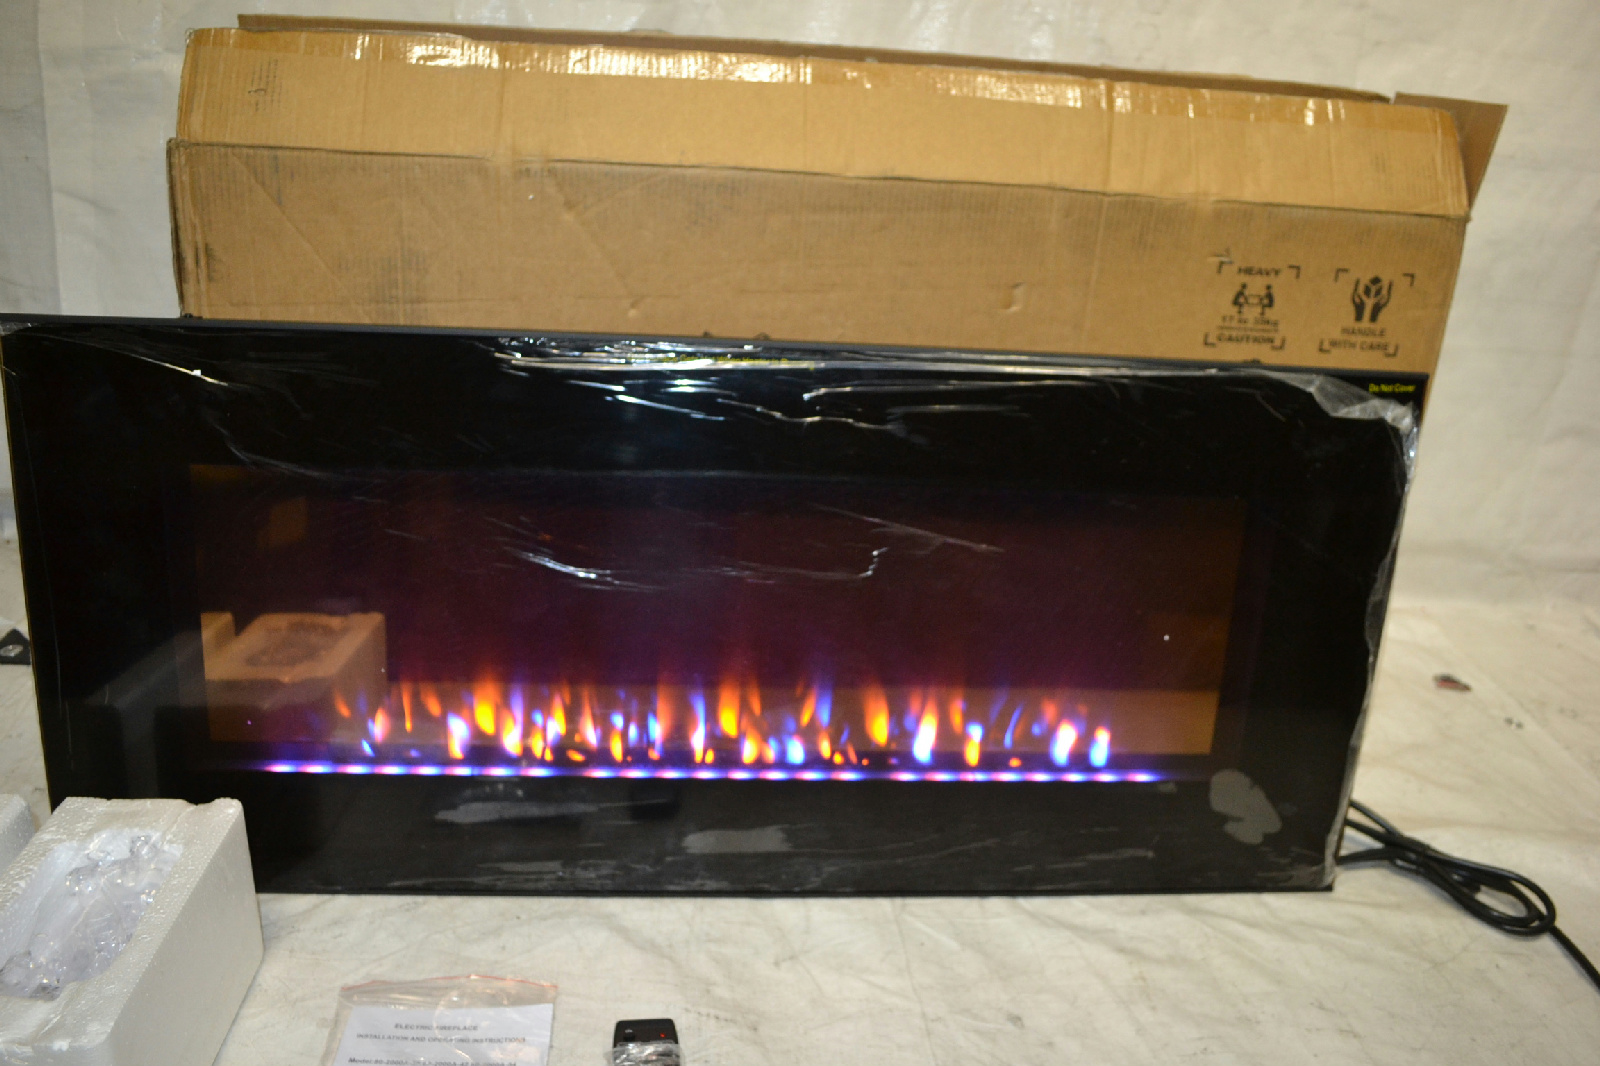 northwest 80 ef455s curved glass electric fireplace wall mount and ...